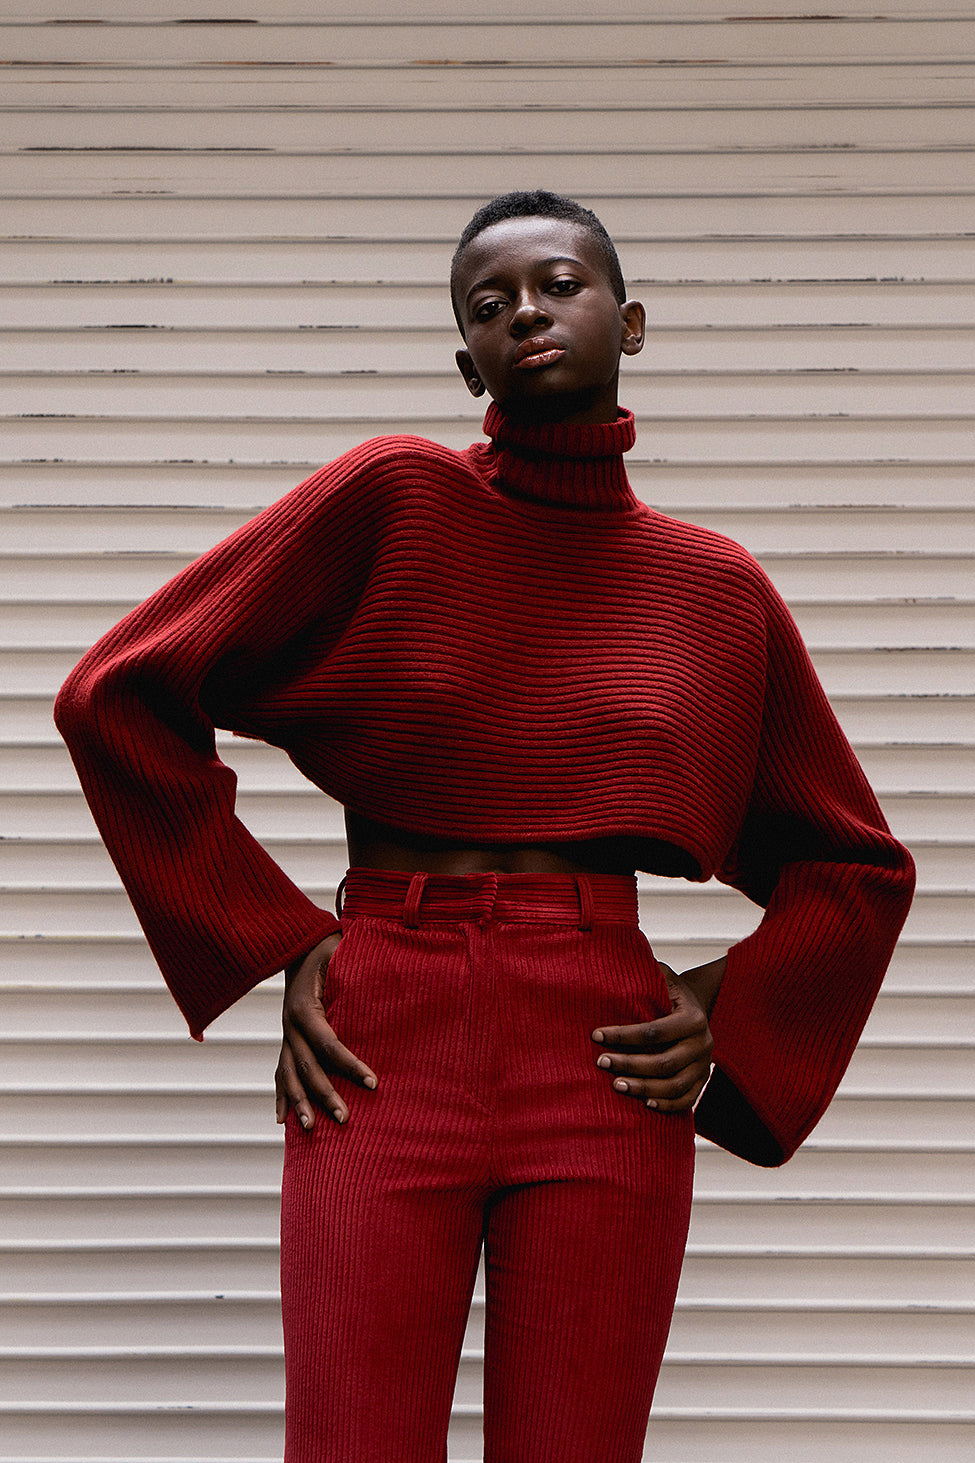 The Gianni sweater in burgundy featuring bell sleeves and cropped hemlines. Ribbed knit from soft, thick wool fits neatly on the shoulder and cuffs but is exaggerated through the arms and chest. It hits just above the bust. Pull on. Relaxed silhouette